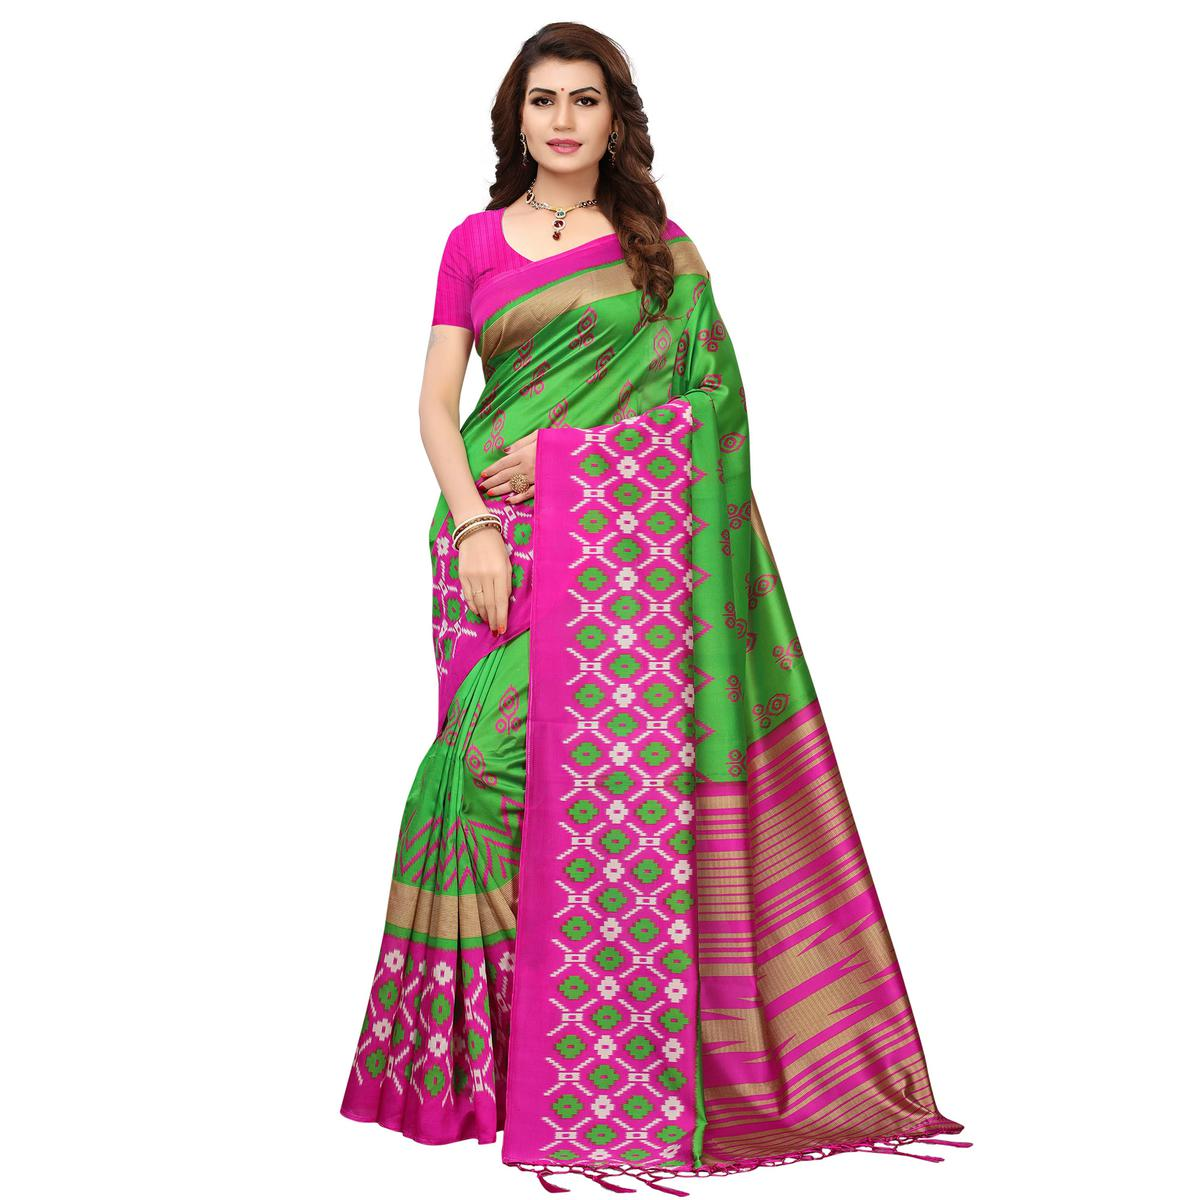 Staring Green-Pink Colored Printed Festive Wear Mysore Art Silk Saree